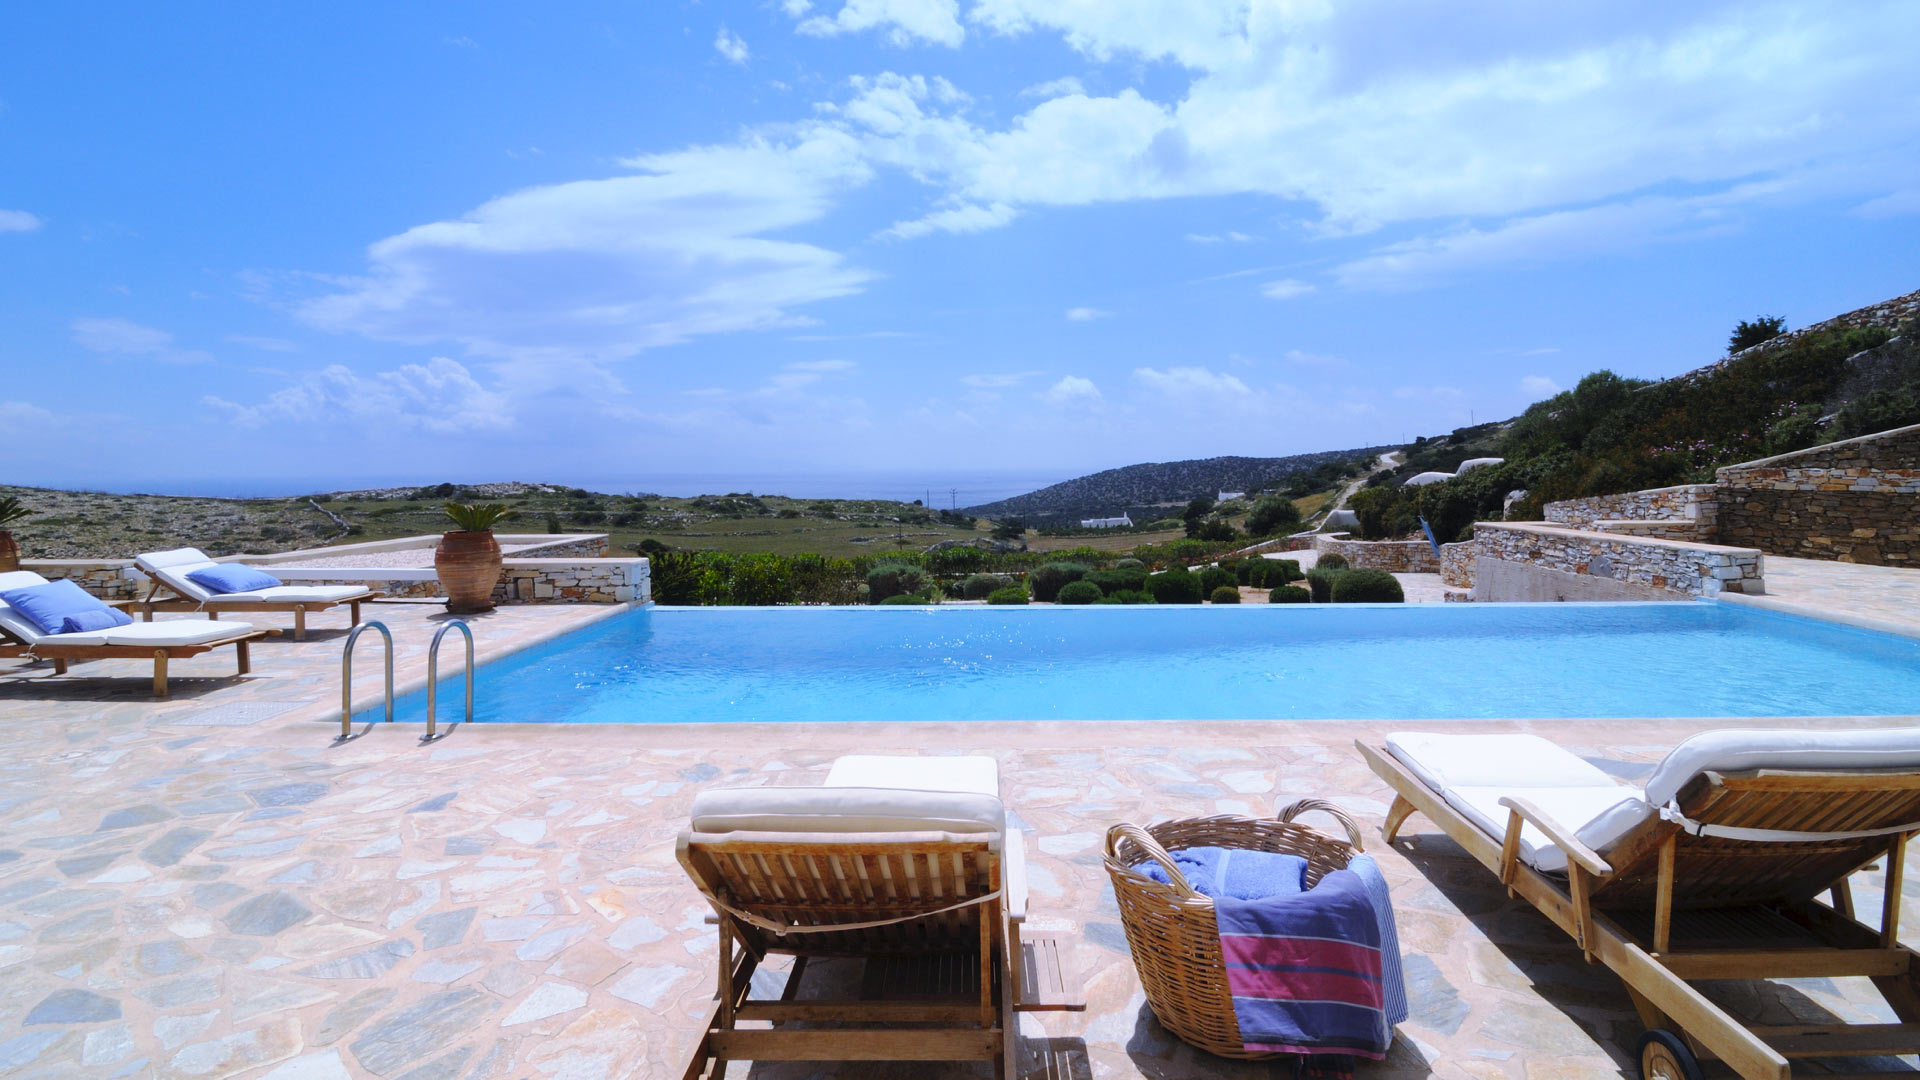 Villa Villa Ines, Rental in Cyclades - Other islands